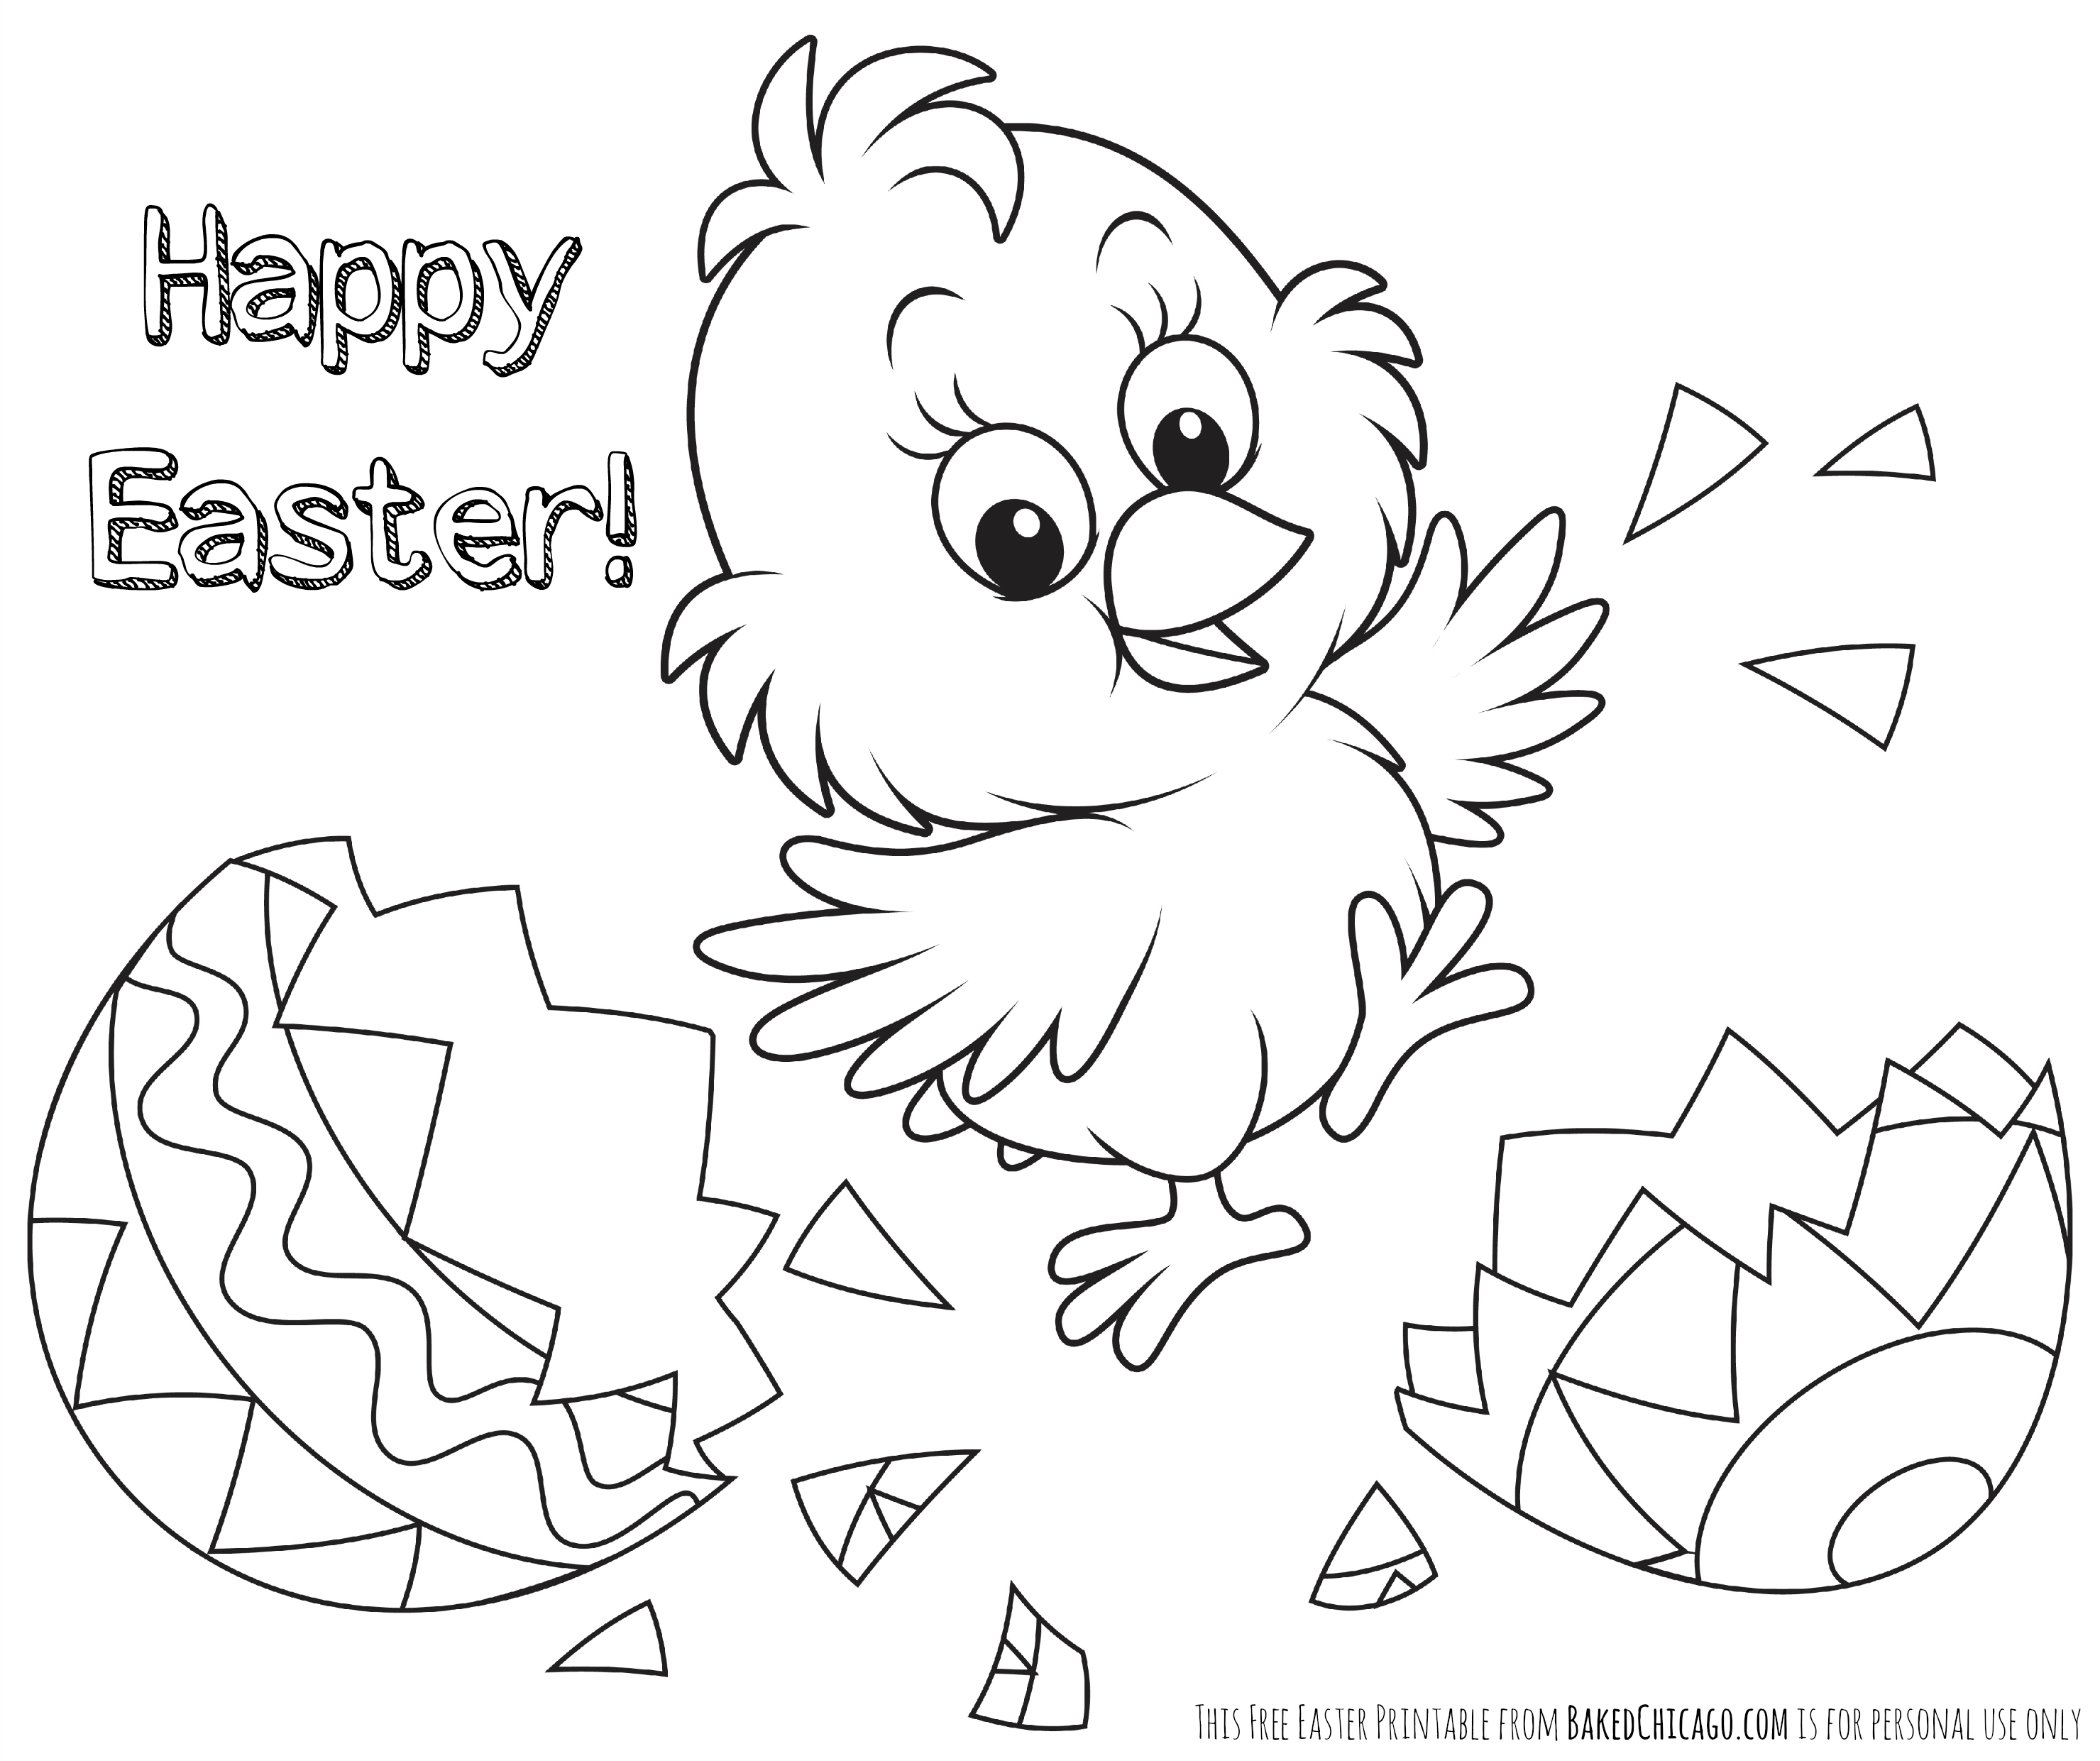 Easter Coloring Pages to Print Coloring Page Gallery Of Easter Coloring Pages for Kids Crazy Little Projects Printable